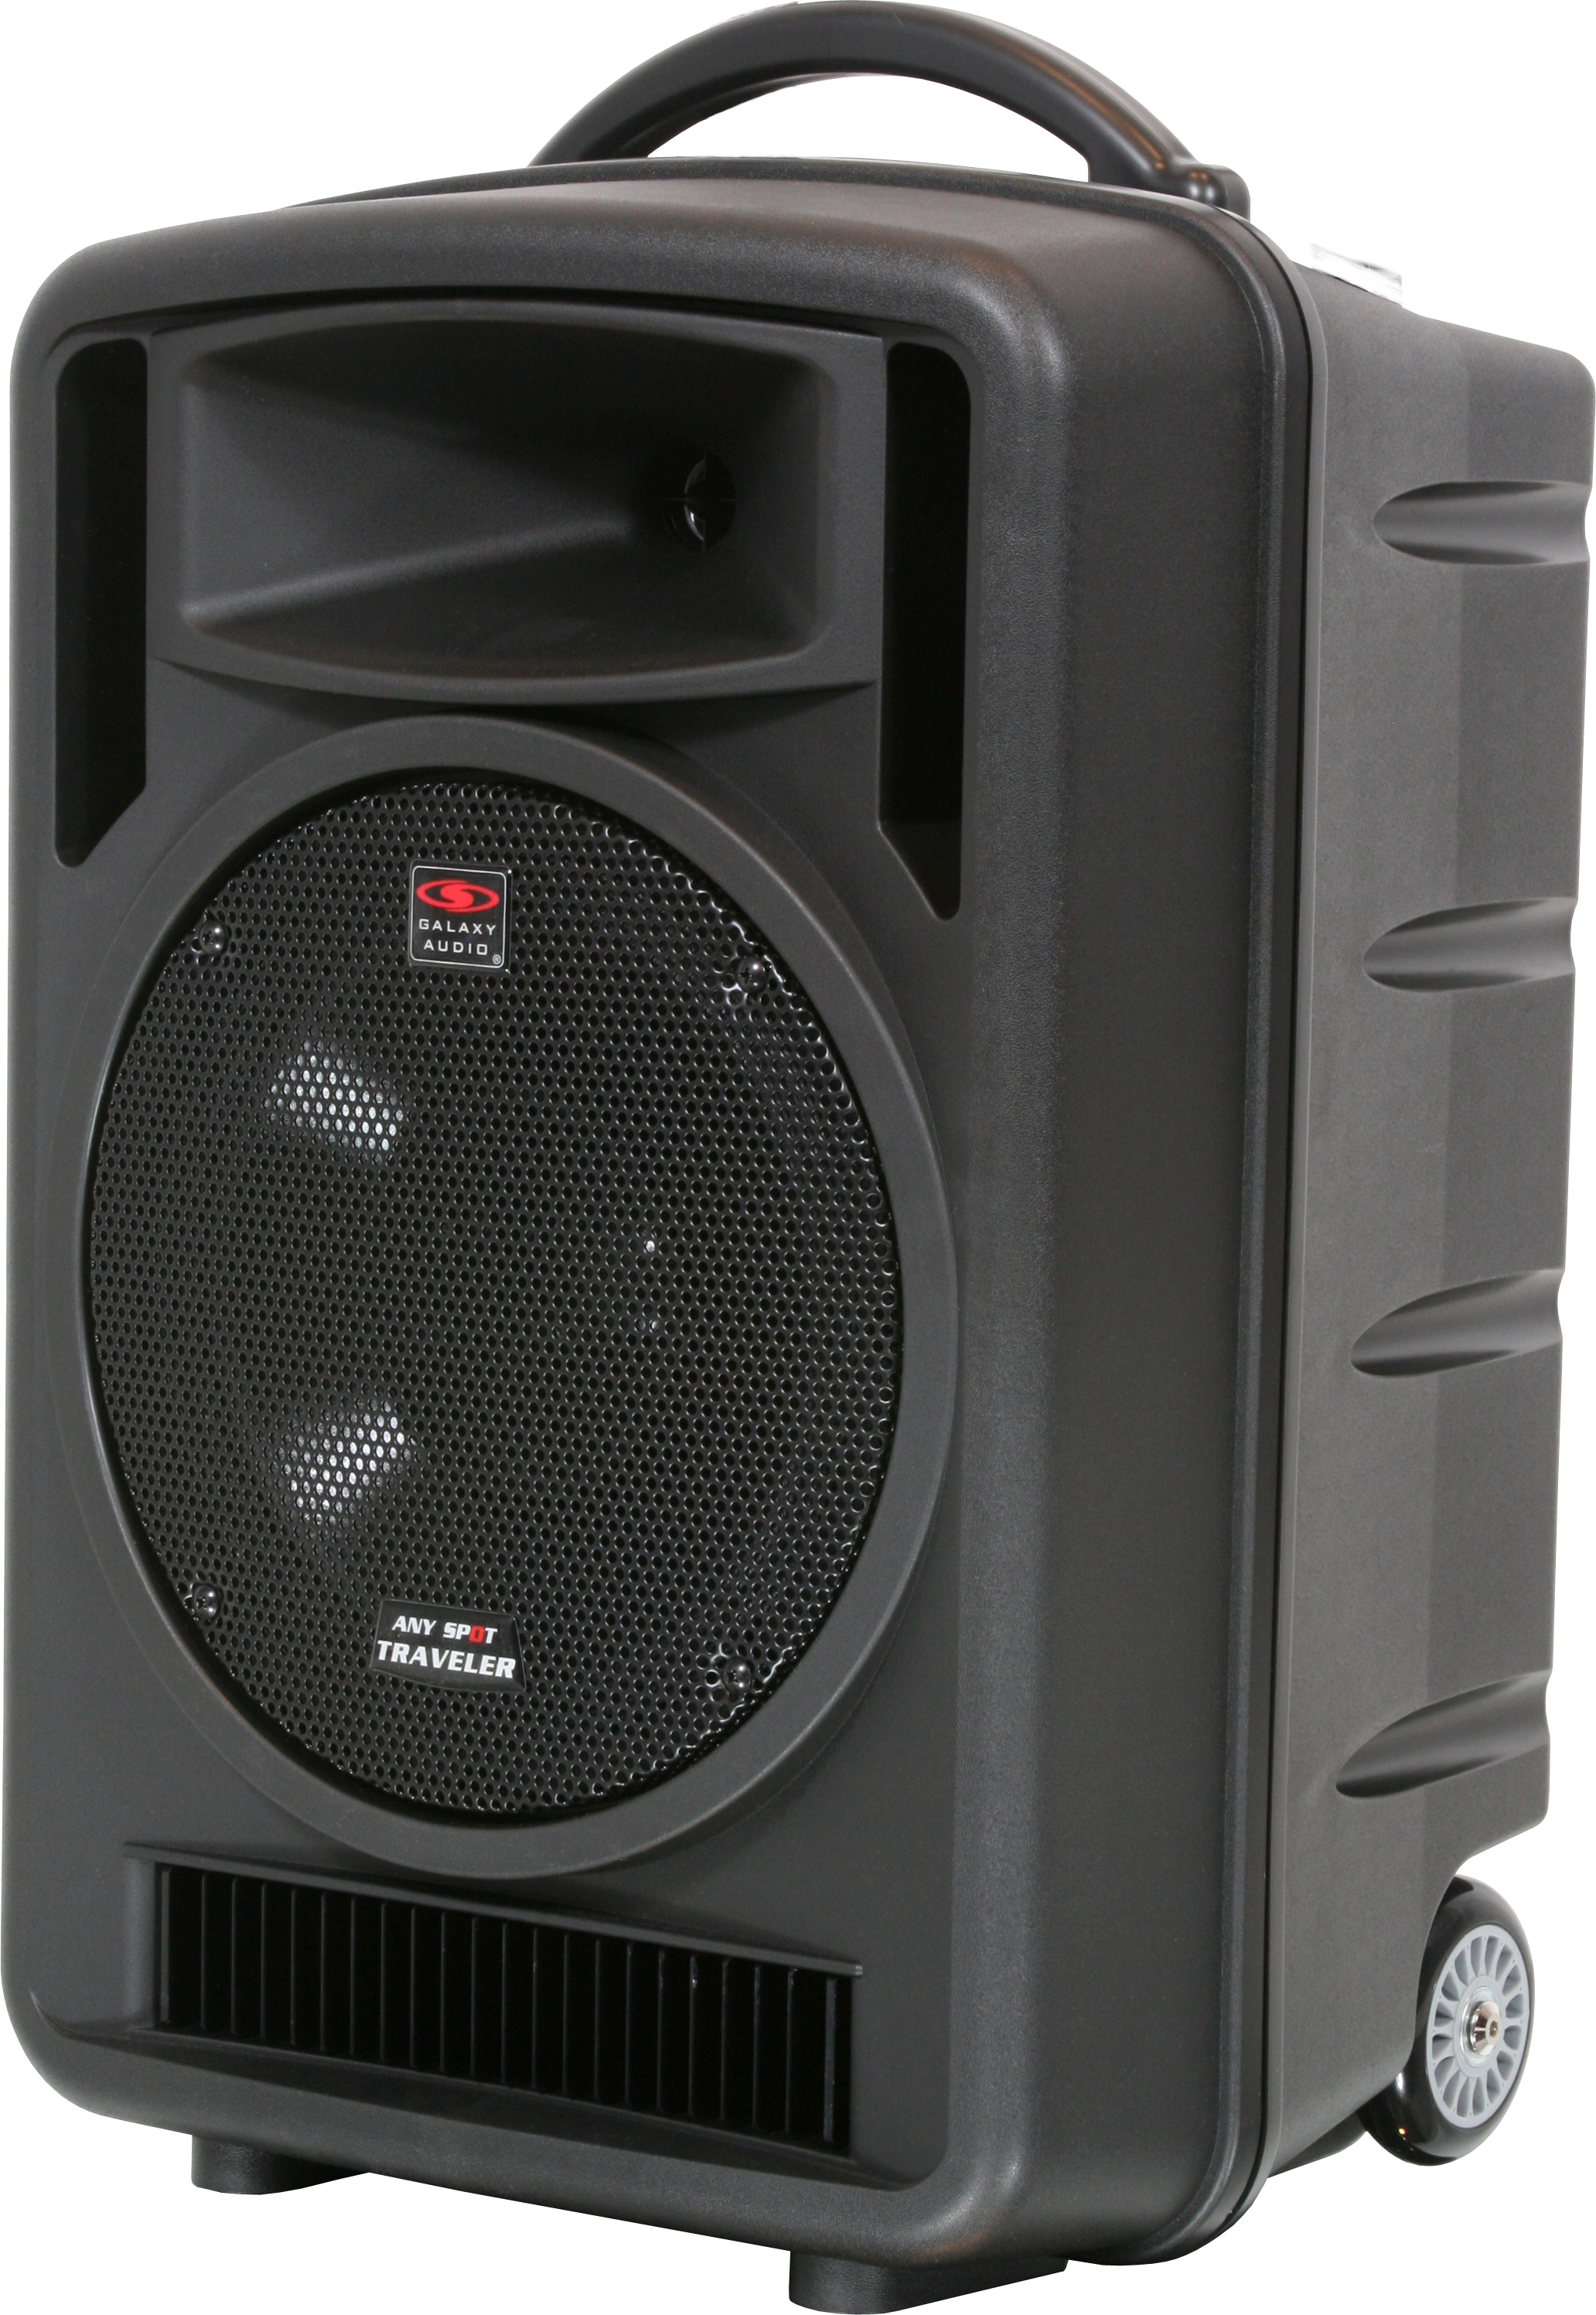 Parts Of The Ear >> Galaxy Audio TV10 Portable PA System